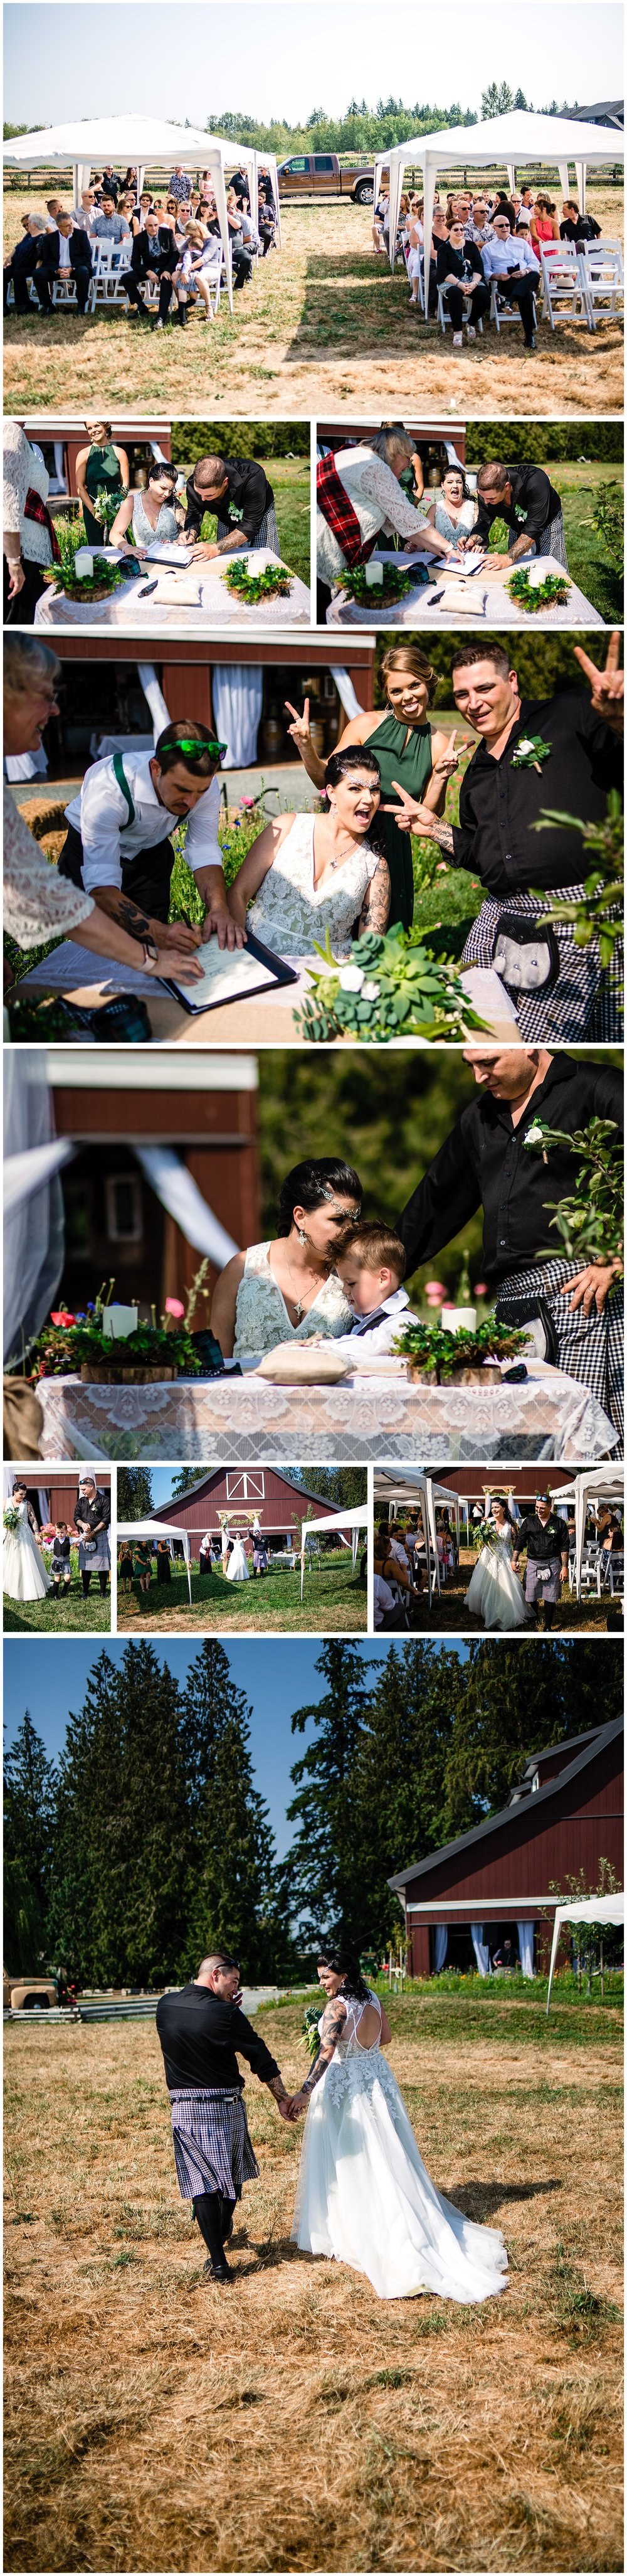 White-Owl-Barn-langley-bc-wedding-photographer-rustic-bbq-foodtruck-scottish-emerald-green-drinks_0003.jpg